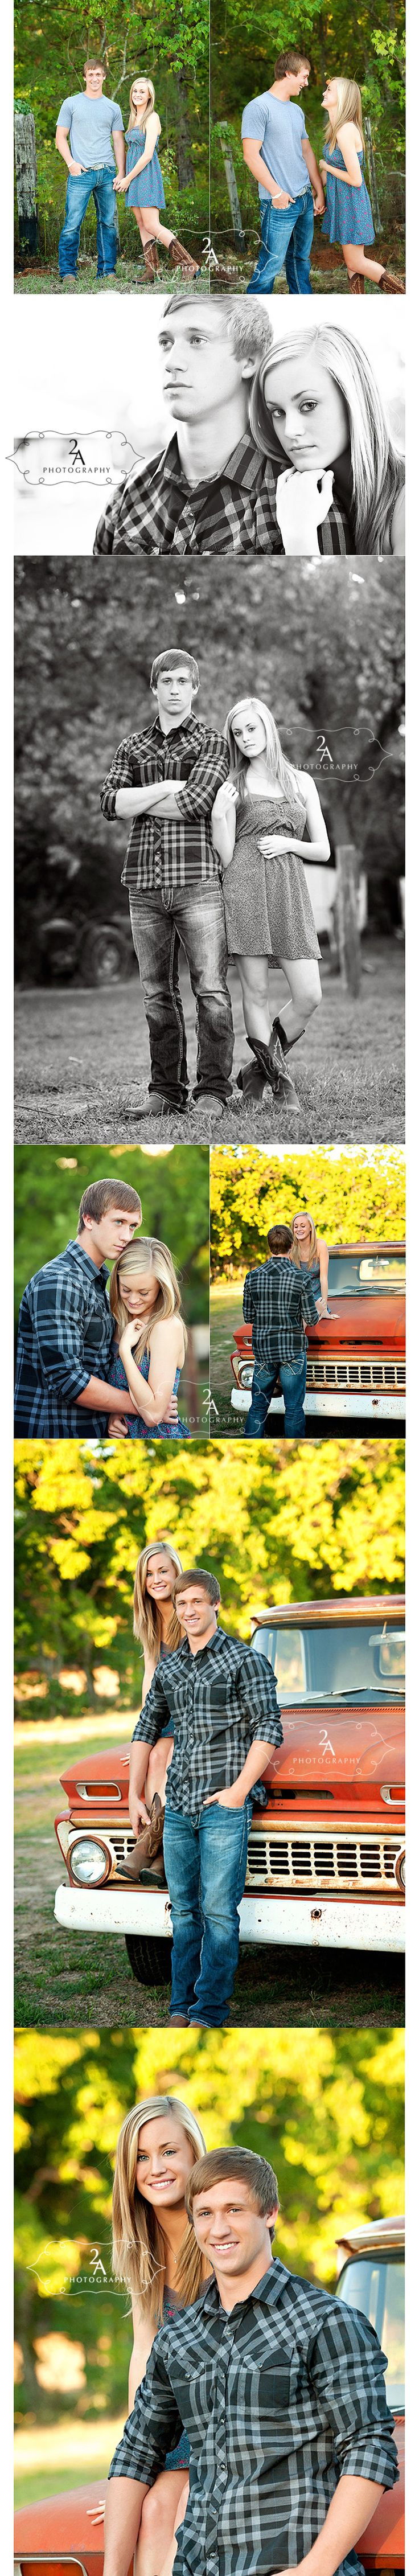 Boyfriend/Girlfriend Senior Pictures. cute but smile more, you don't want to kill each other (at least id hope not)